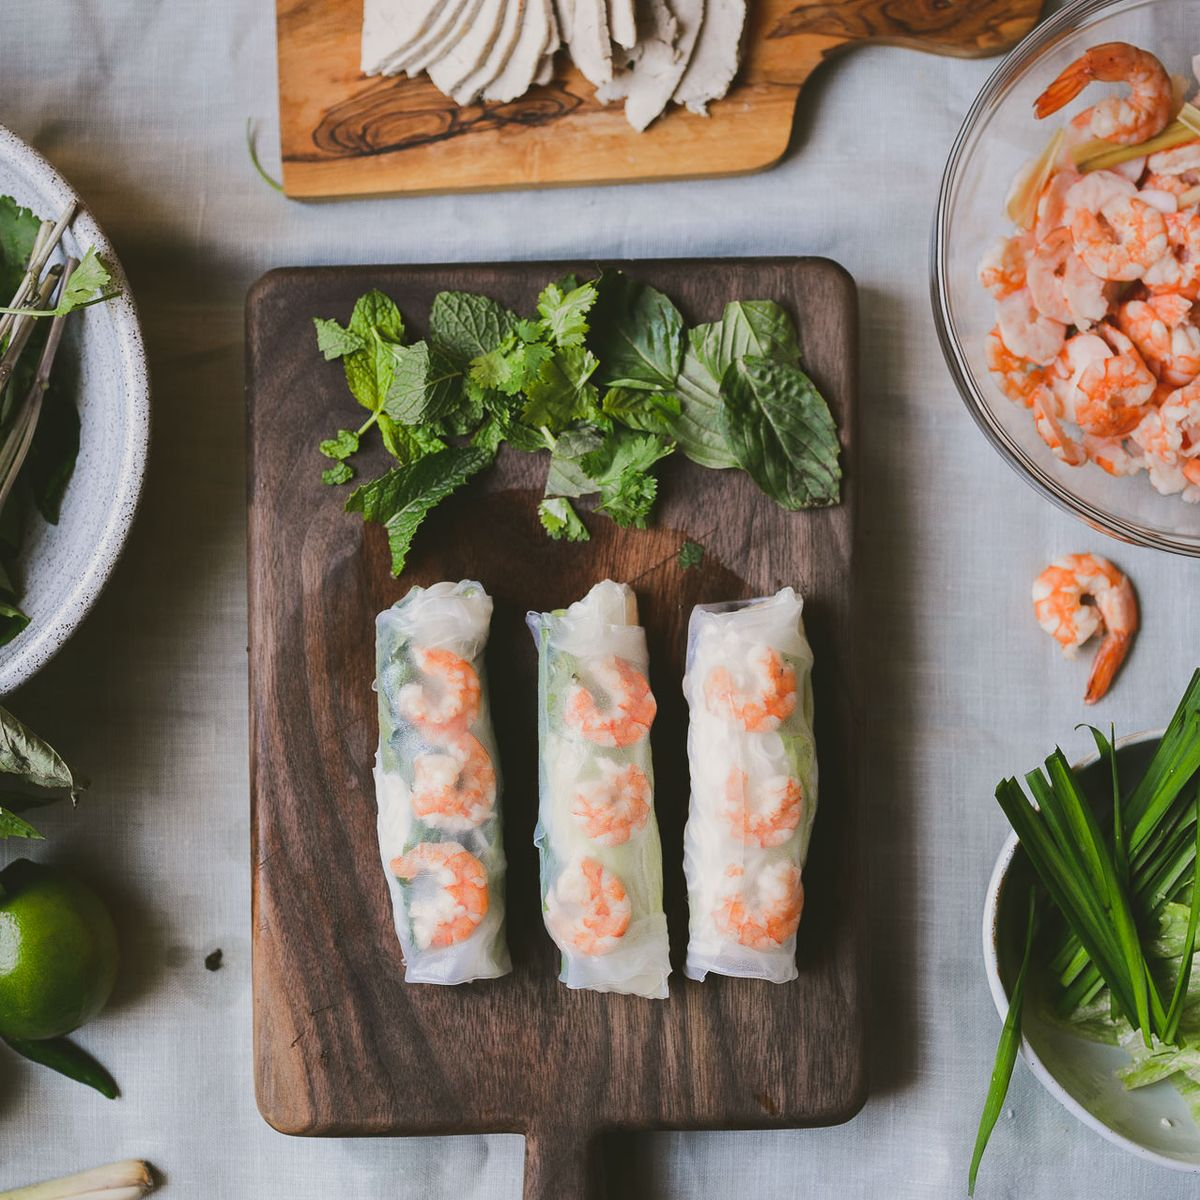 Vietnamese Pork And Shrimp Spring Rolls Gỏi Cuốn Recipe On Food52